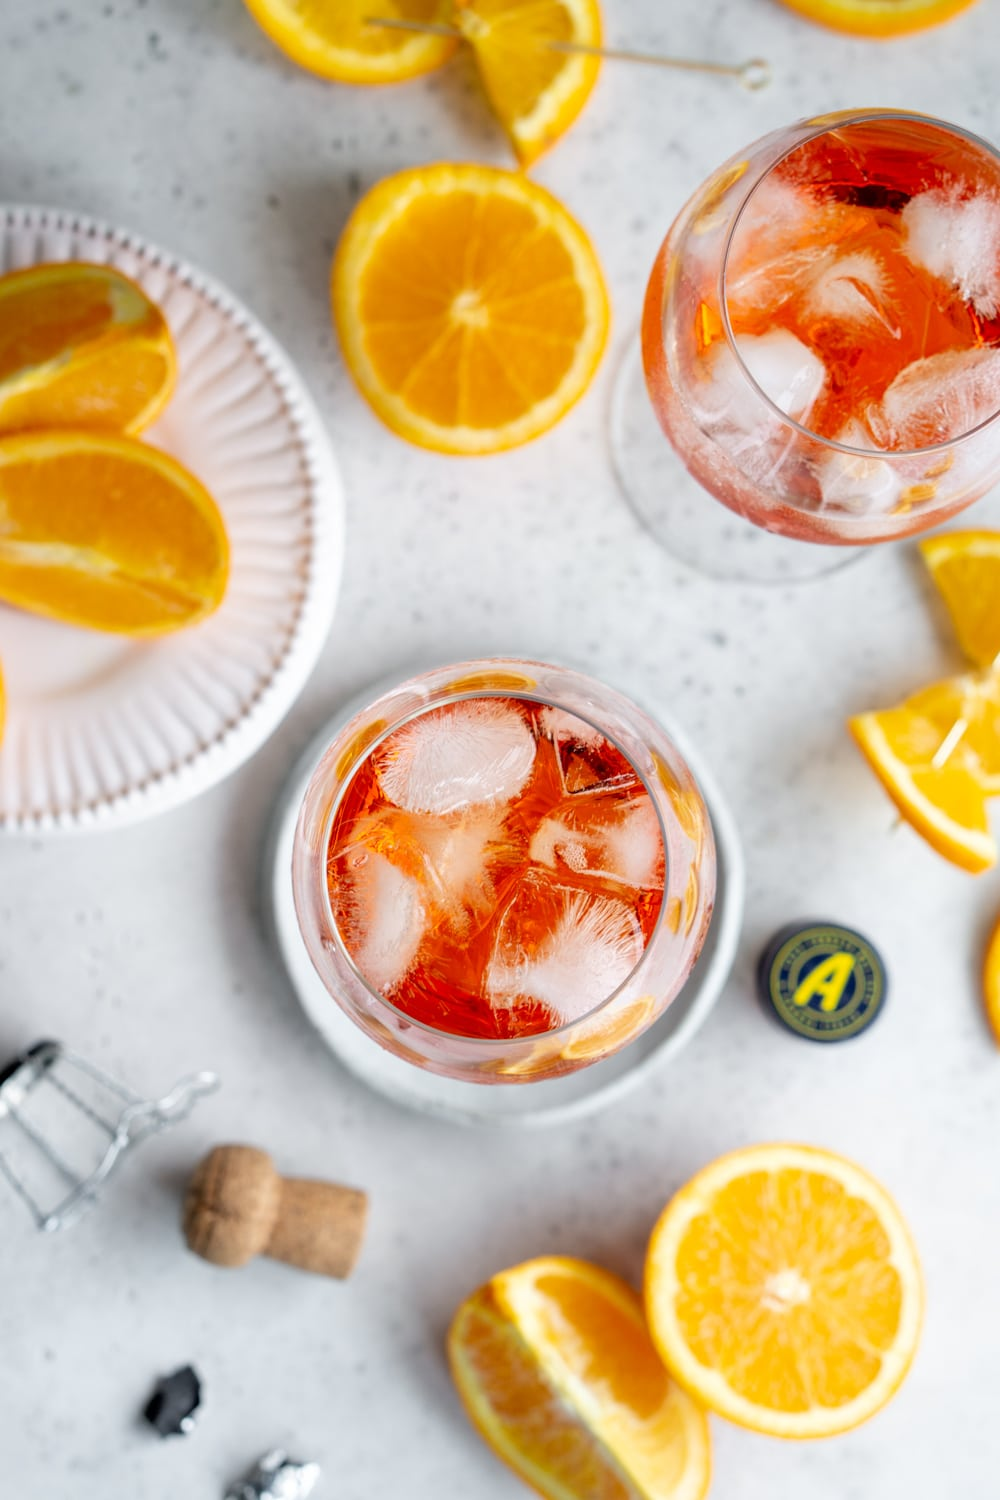 Overhead shot of 2 aperol spritz glasses with oranges scattered around